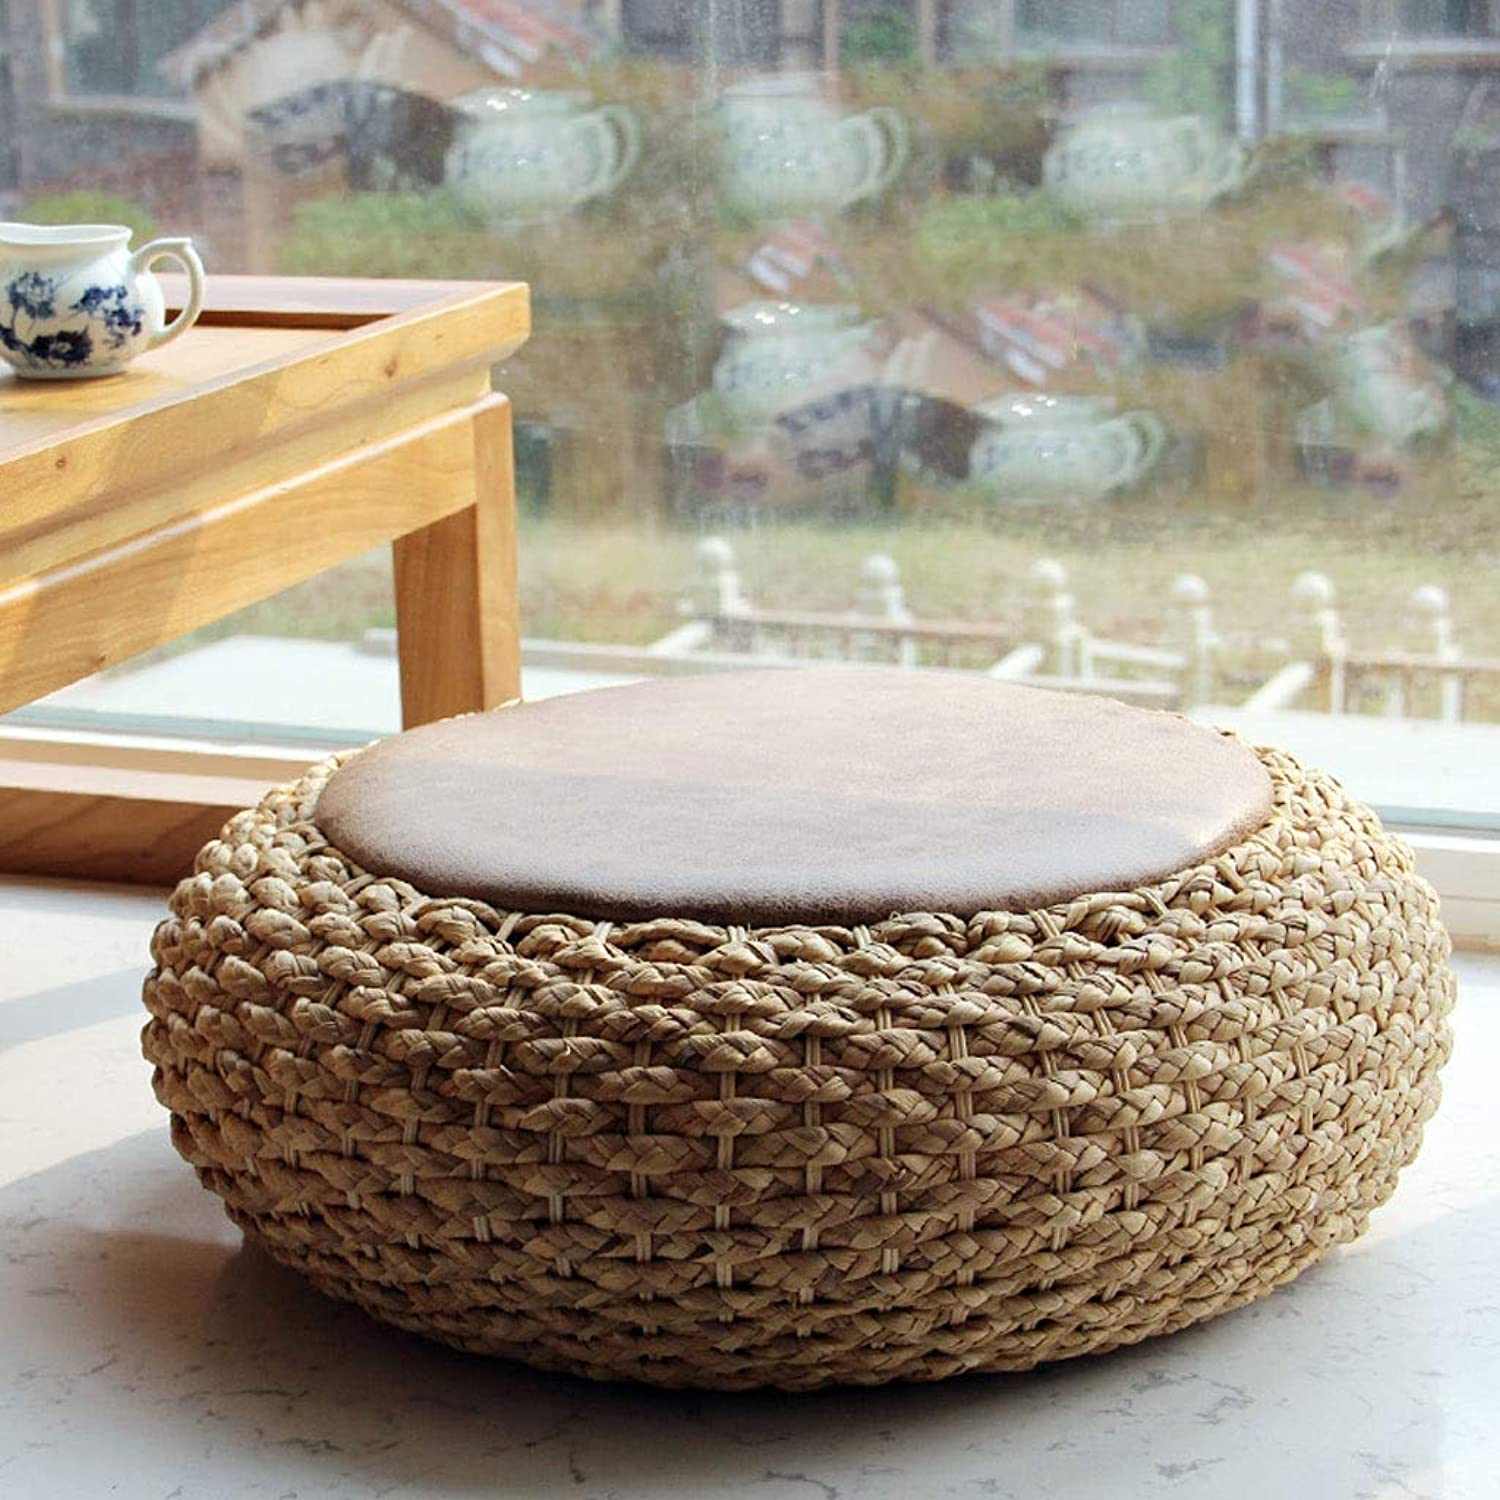 RXY-Wicker chair Straw Futon Cushion, Thick Round Rattan Cushion, Japanese-Style Floor Tatami Mat (Size   40x17cm)